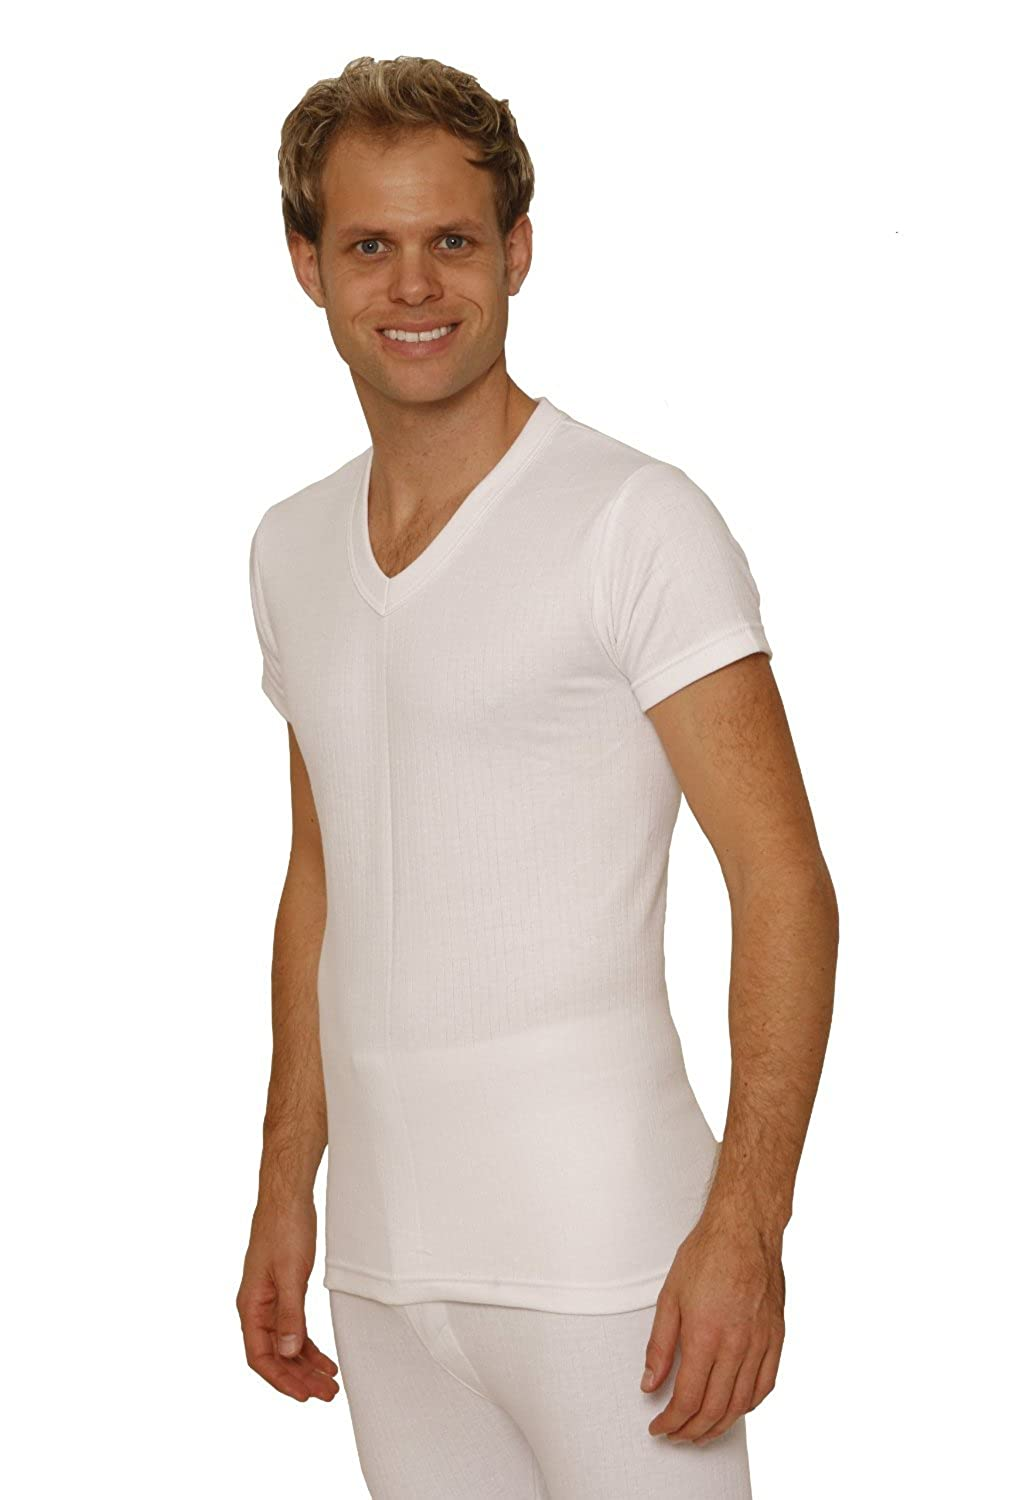 6 PACK: OCTAVE® Mens Thermal Underwear Short Sleeve 'V'-Neck T-Shirt / Vest / Top